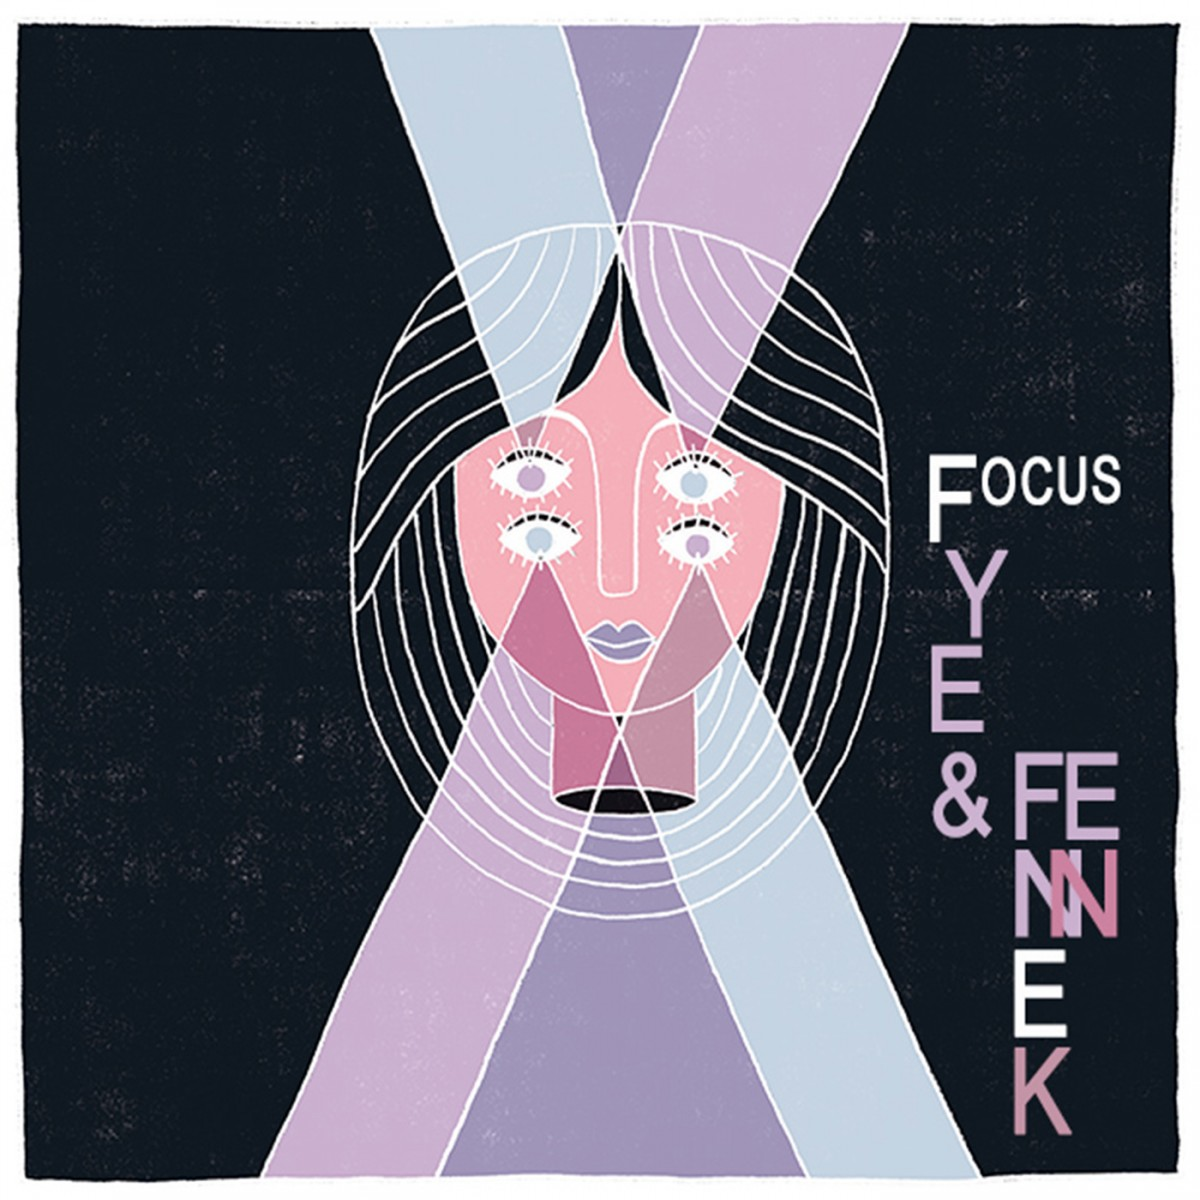 Now Playing: FYE & FENNEK – Focus